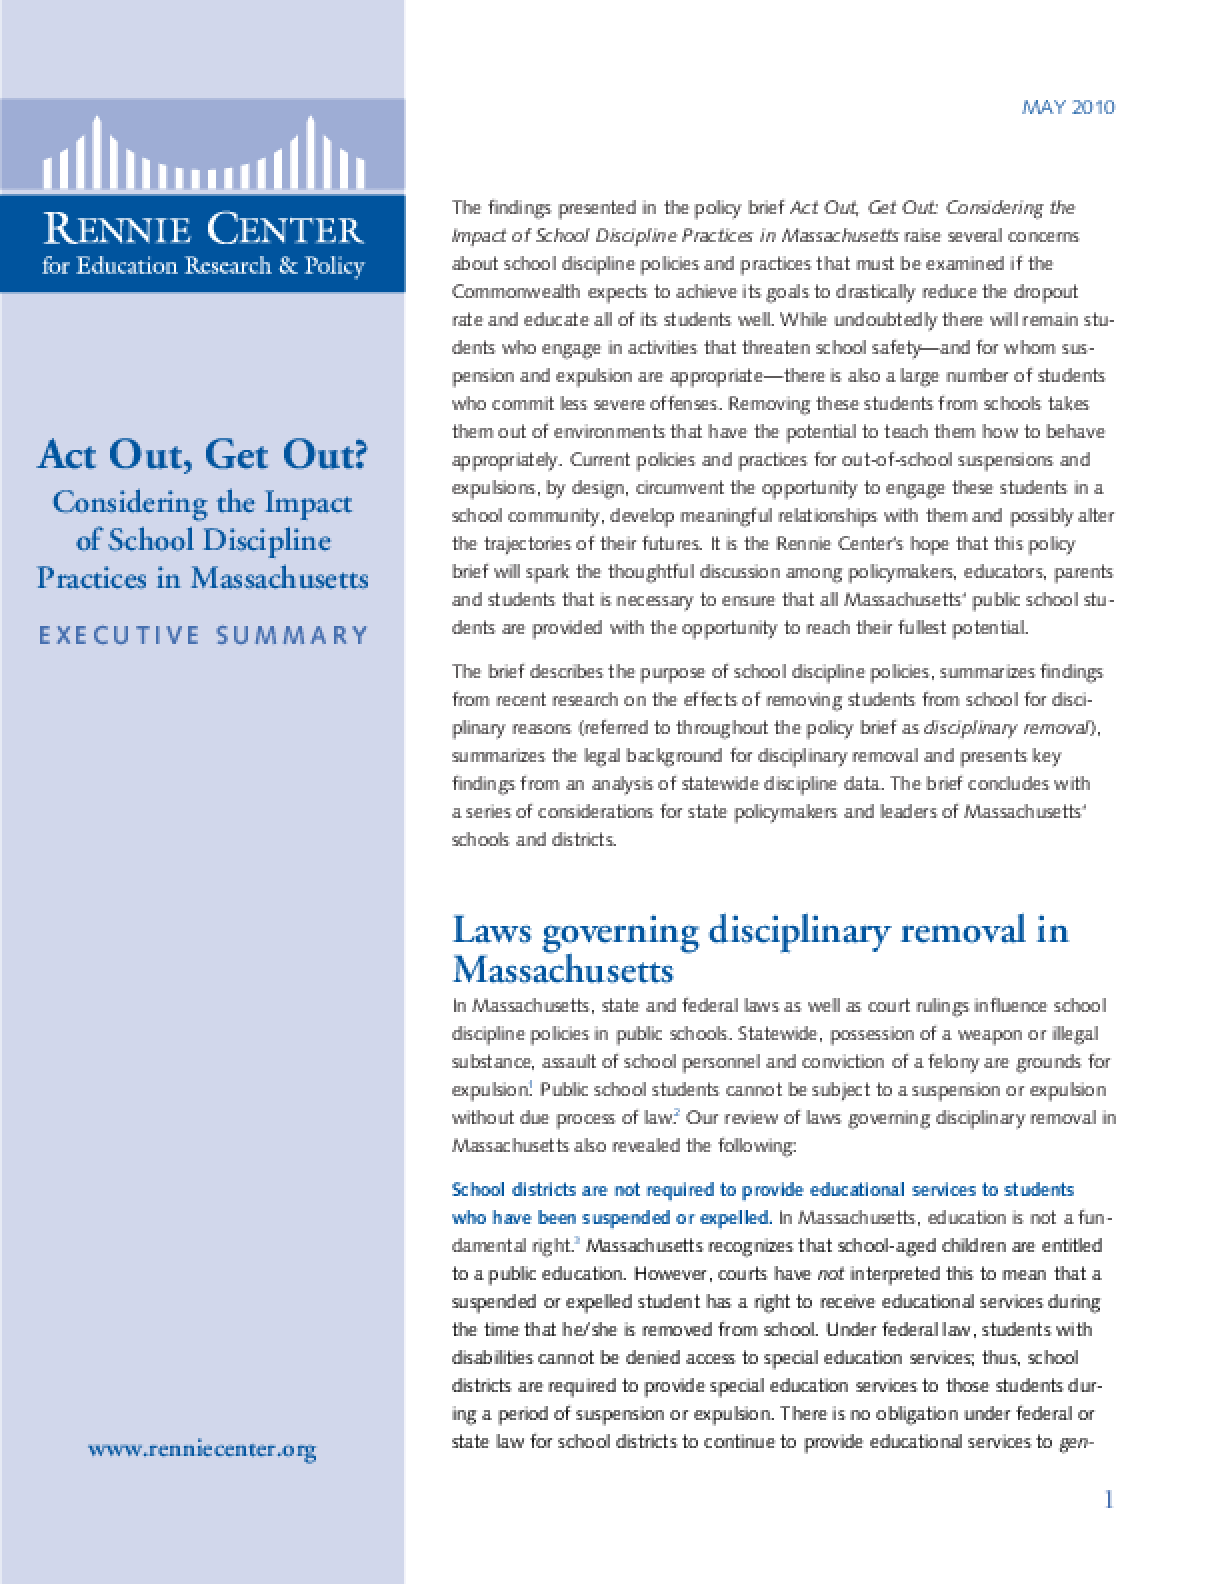 Executive Summary: Act Out, Get Out? Considering the Impact of School Discipline Practices in Massachusetts